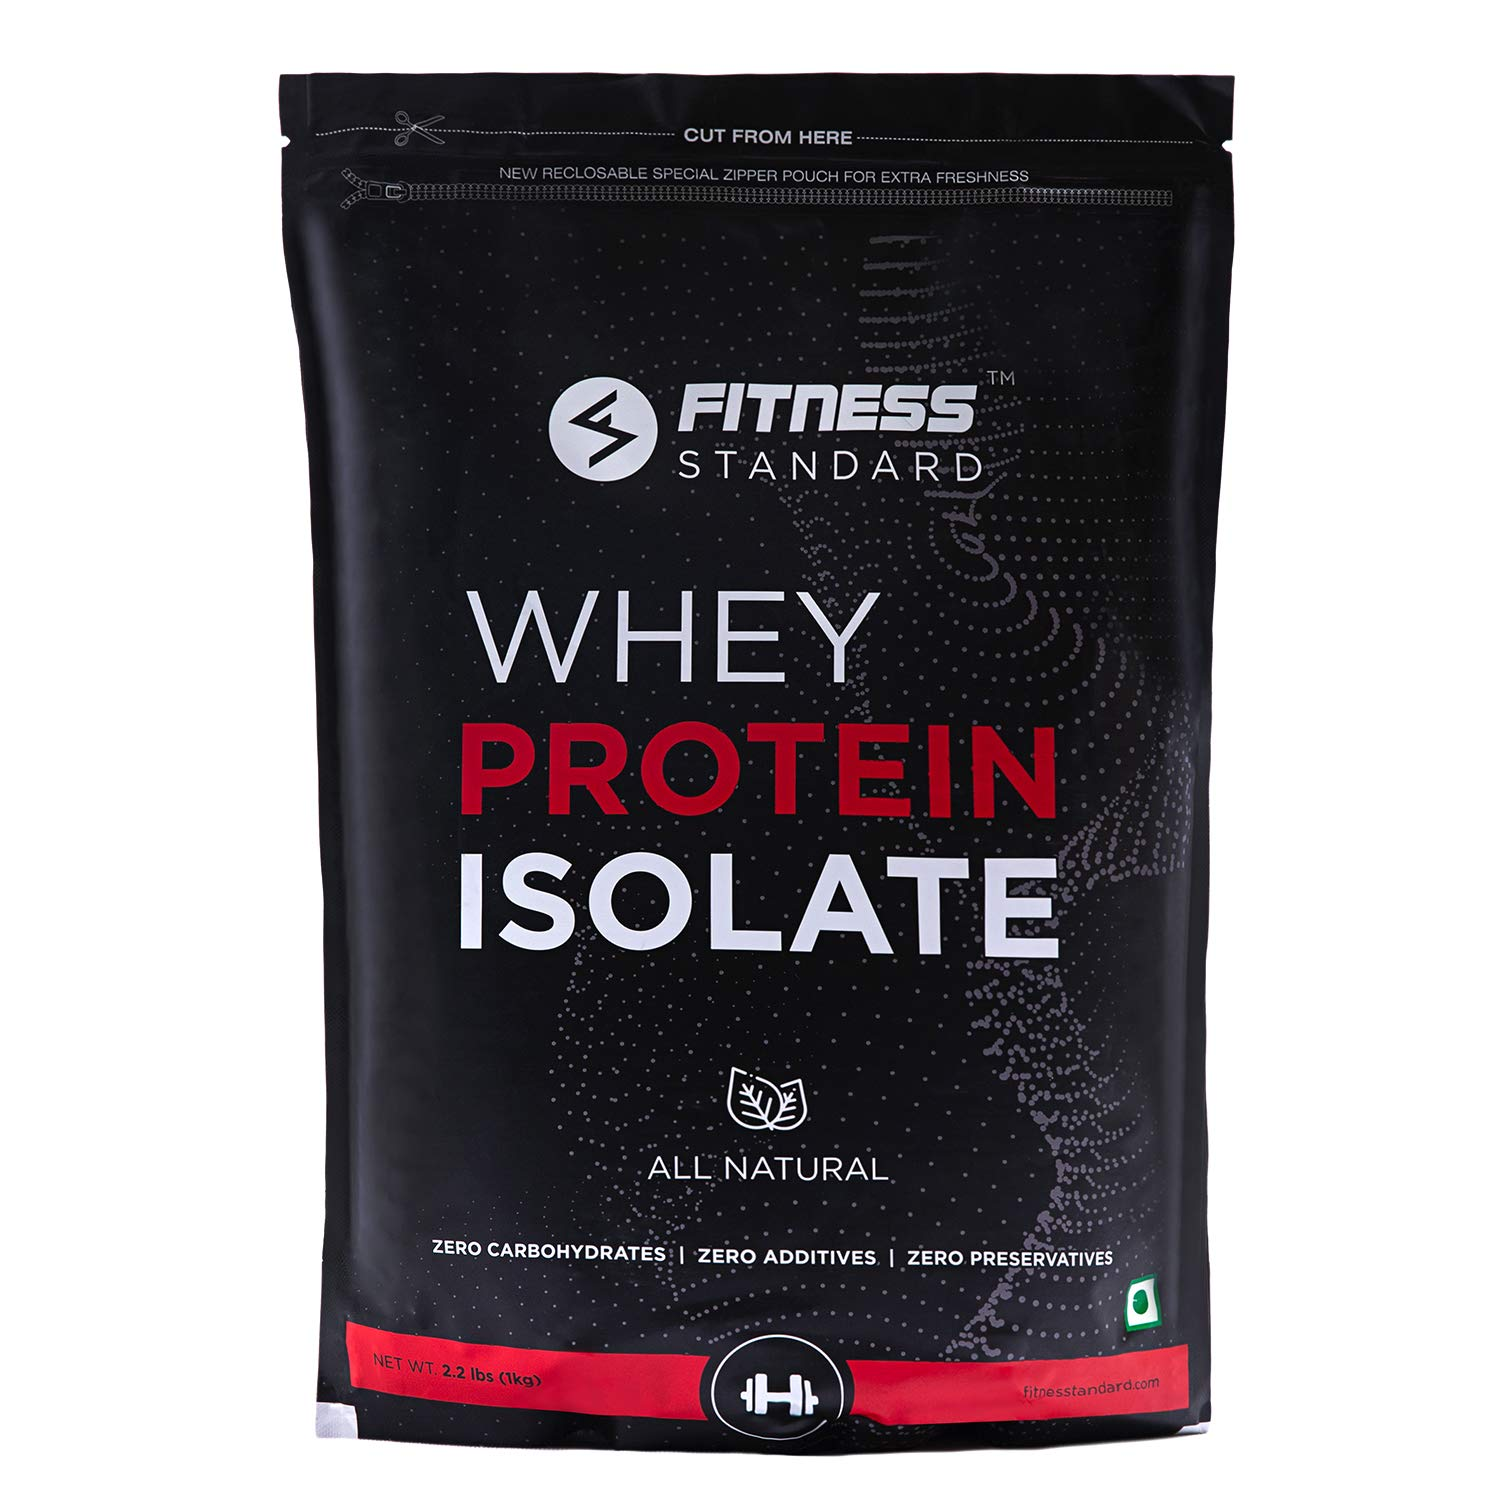 Fitness Standard Whey Protein Isolate